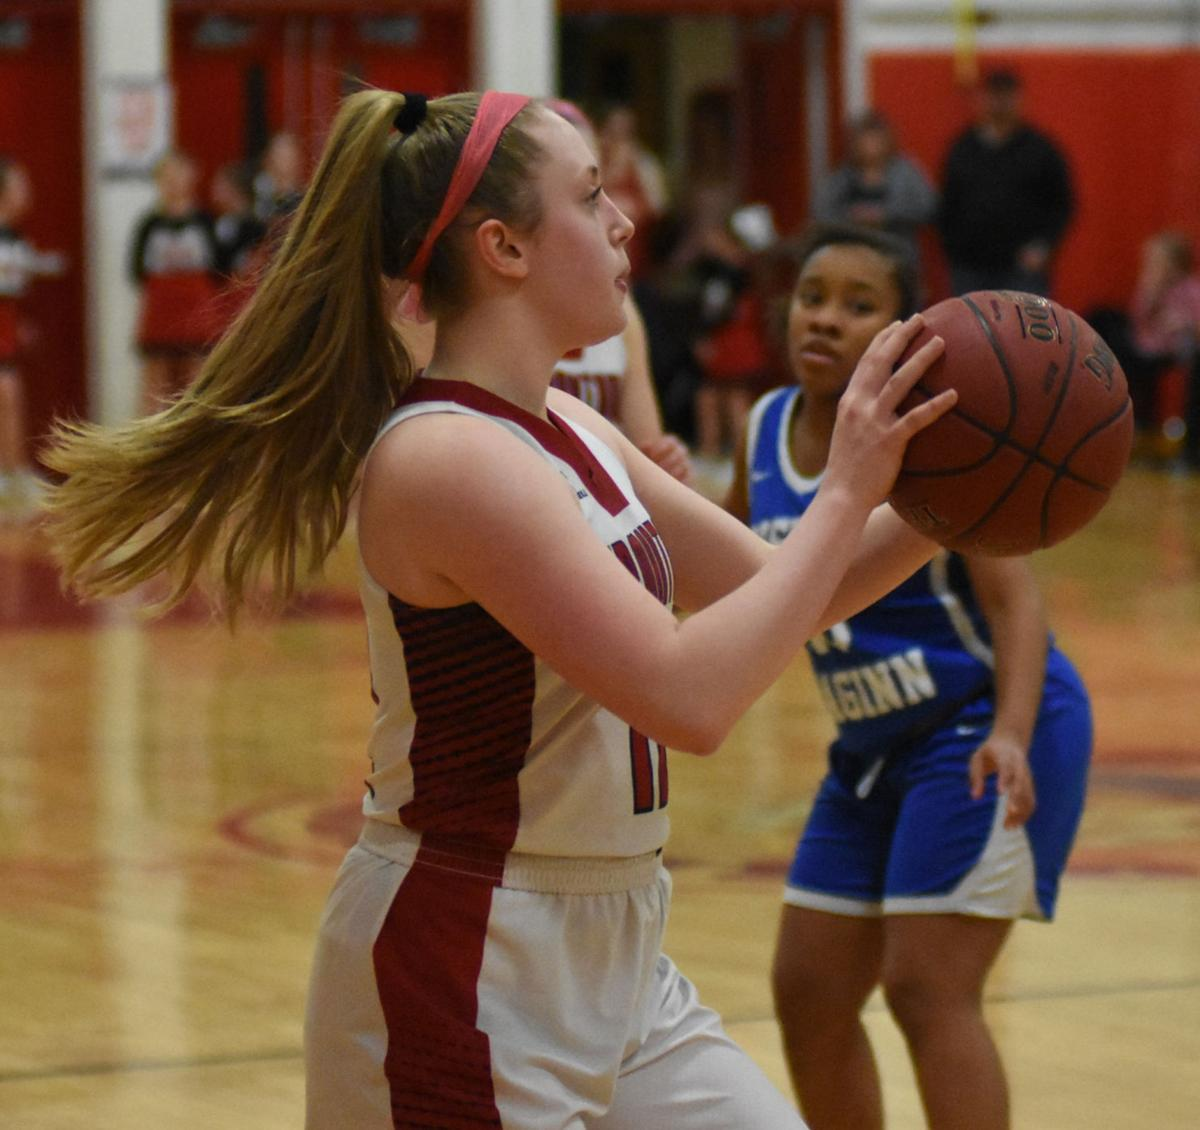 GIRLS BAKSETBALL: CHVL champion Clippers too much for Griffs